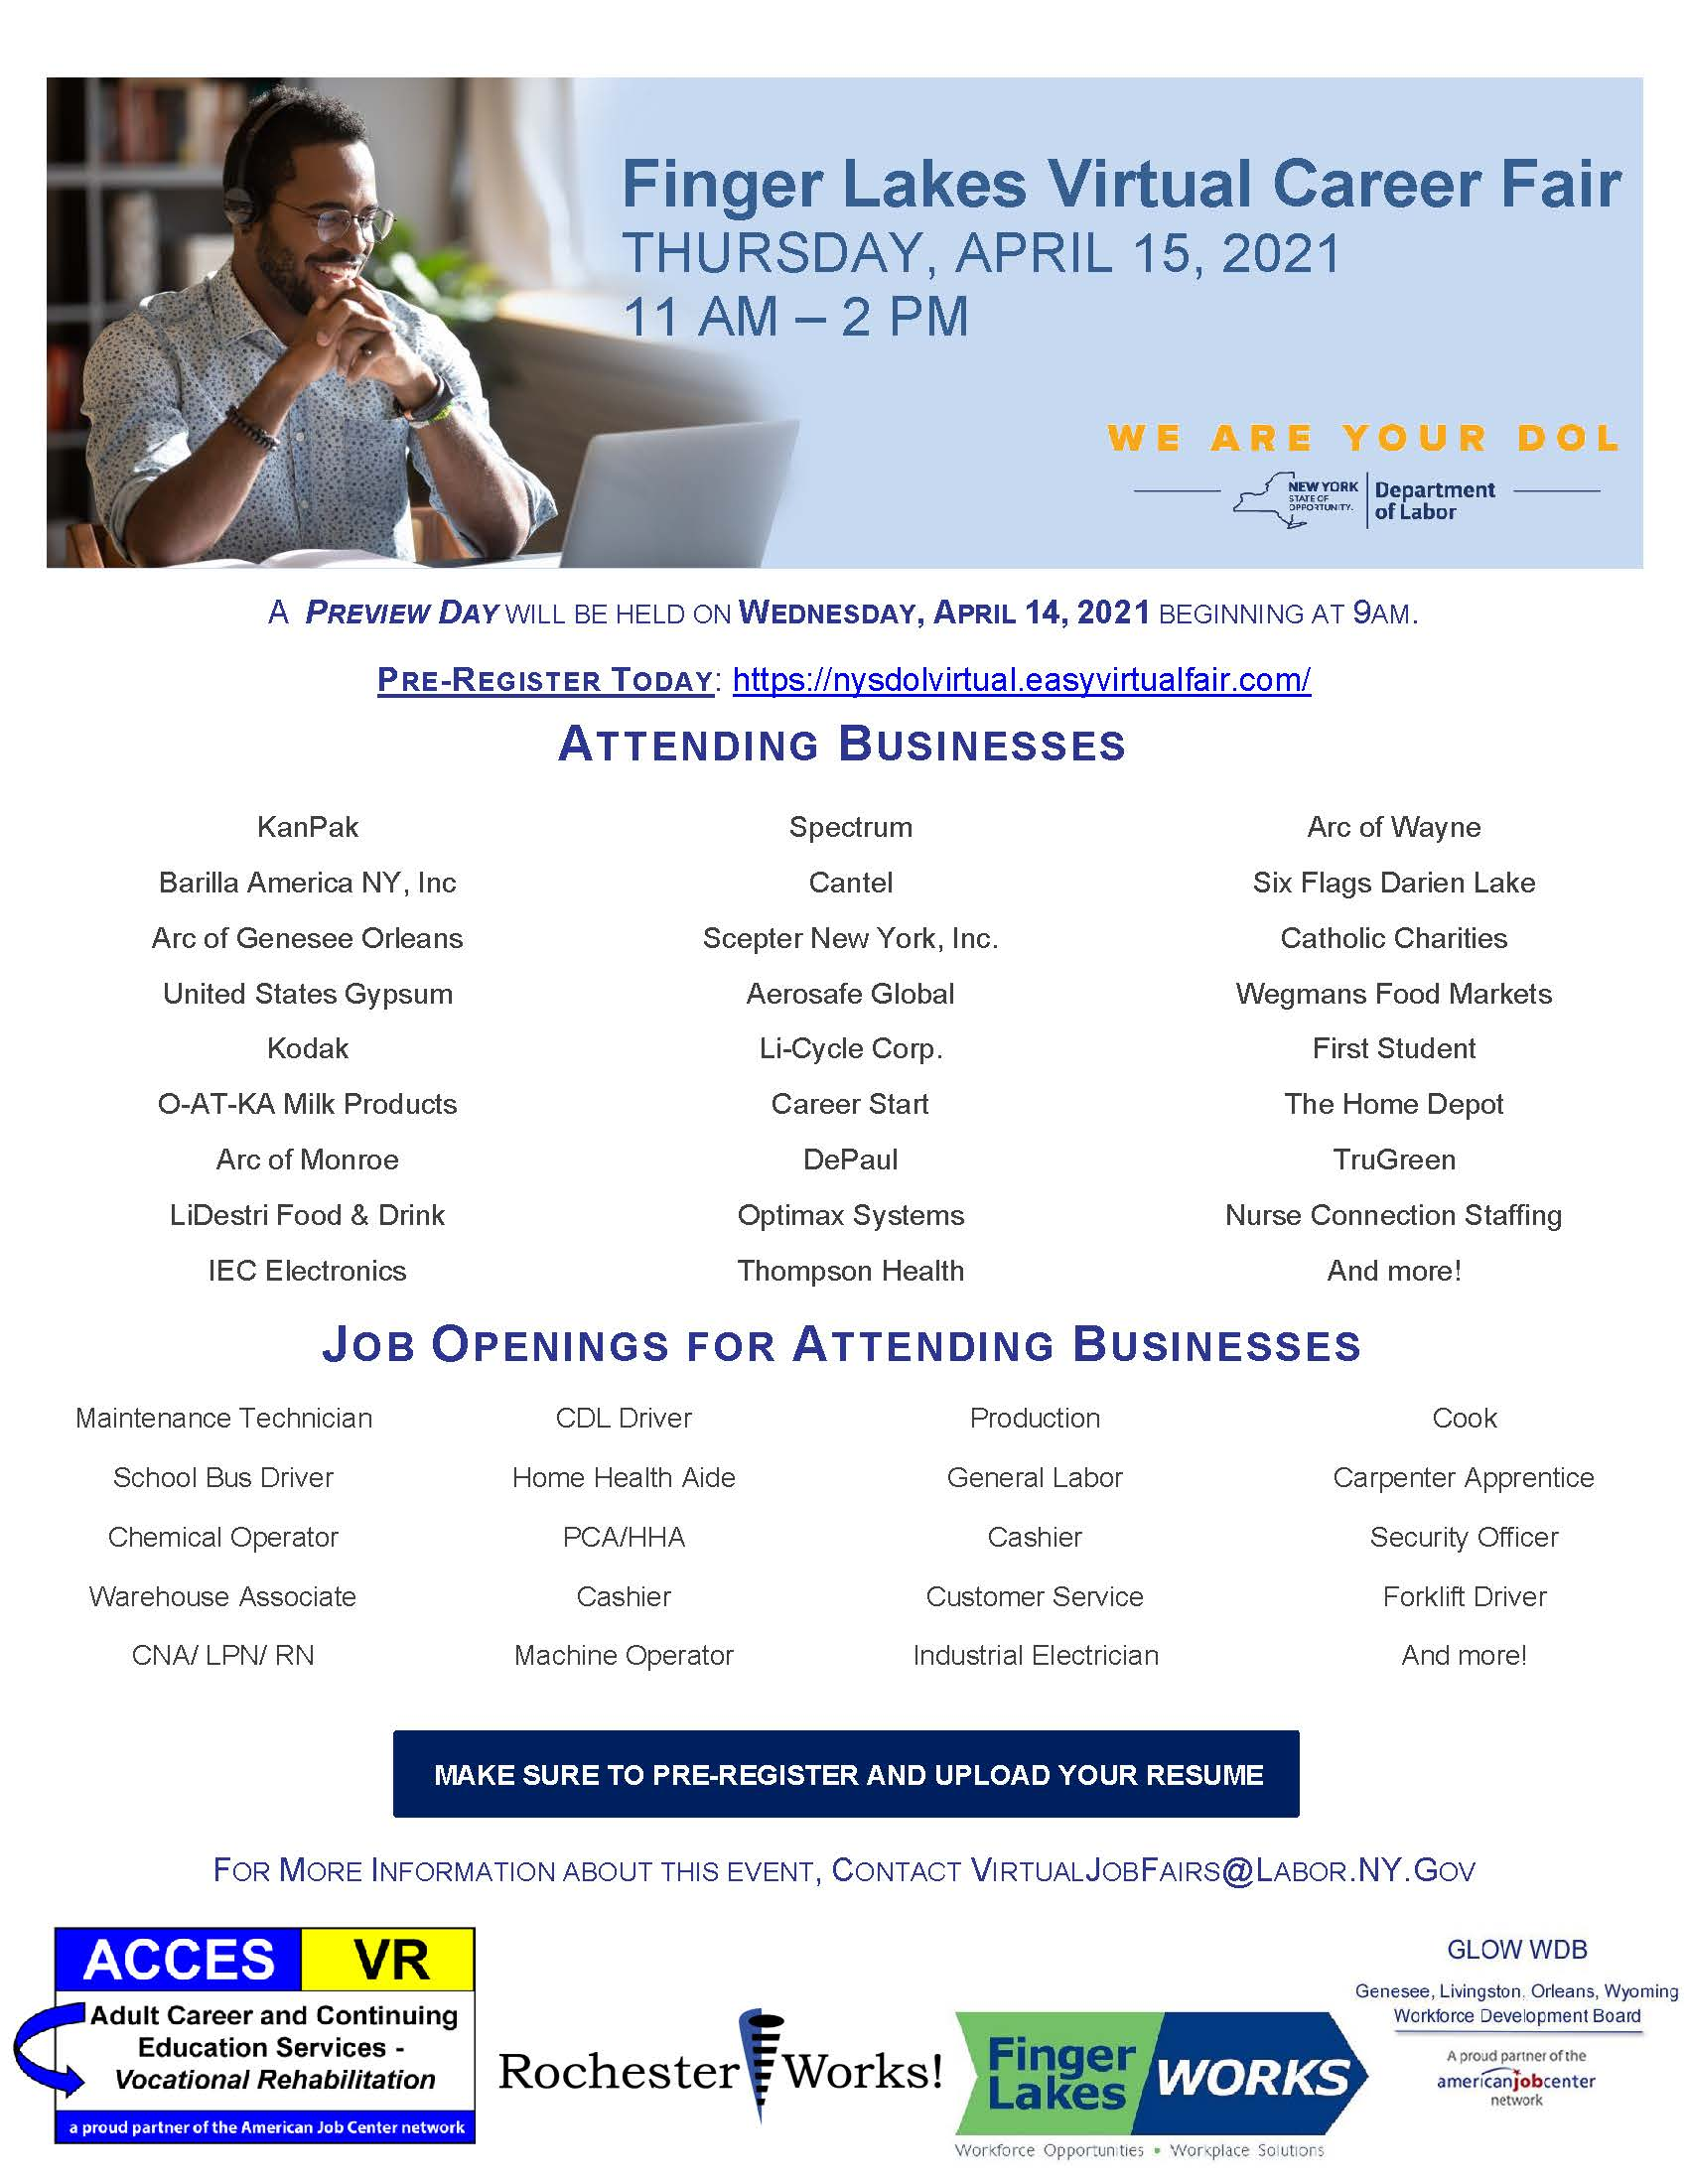 Finger Lakes Virtual Job Seeker Flyer 4.15.2021 (2)